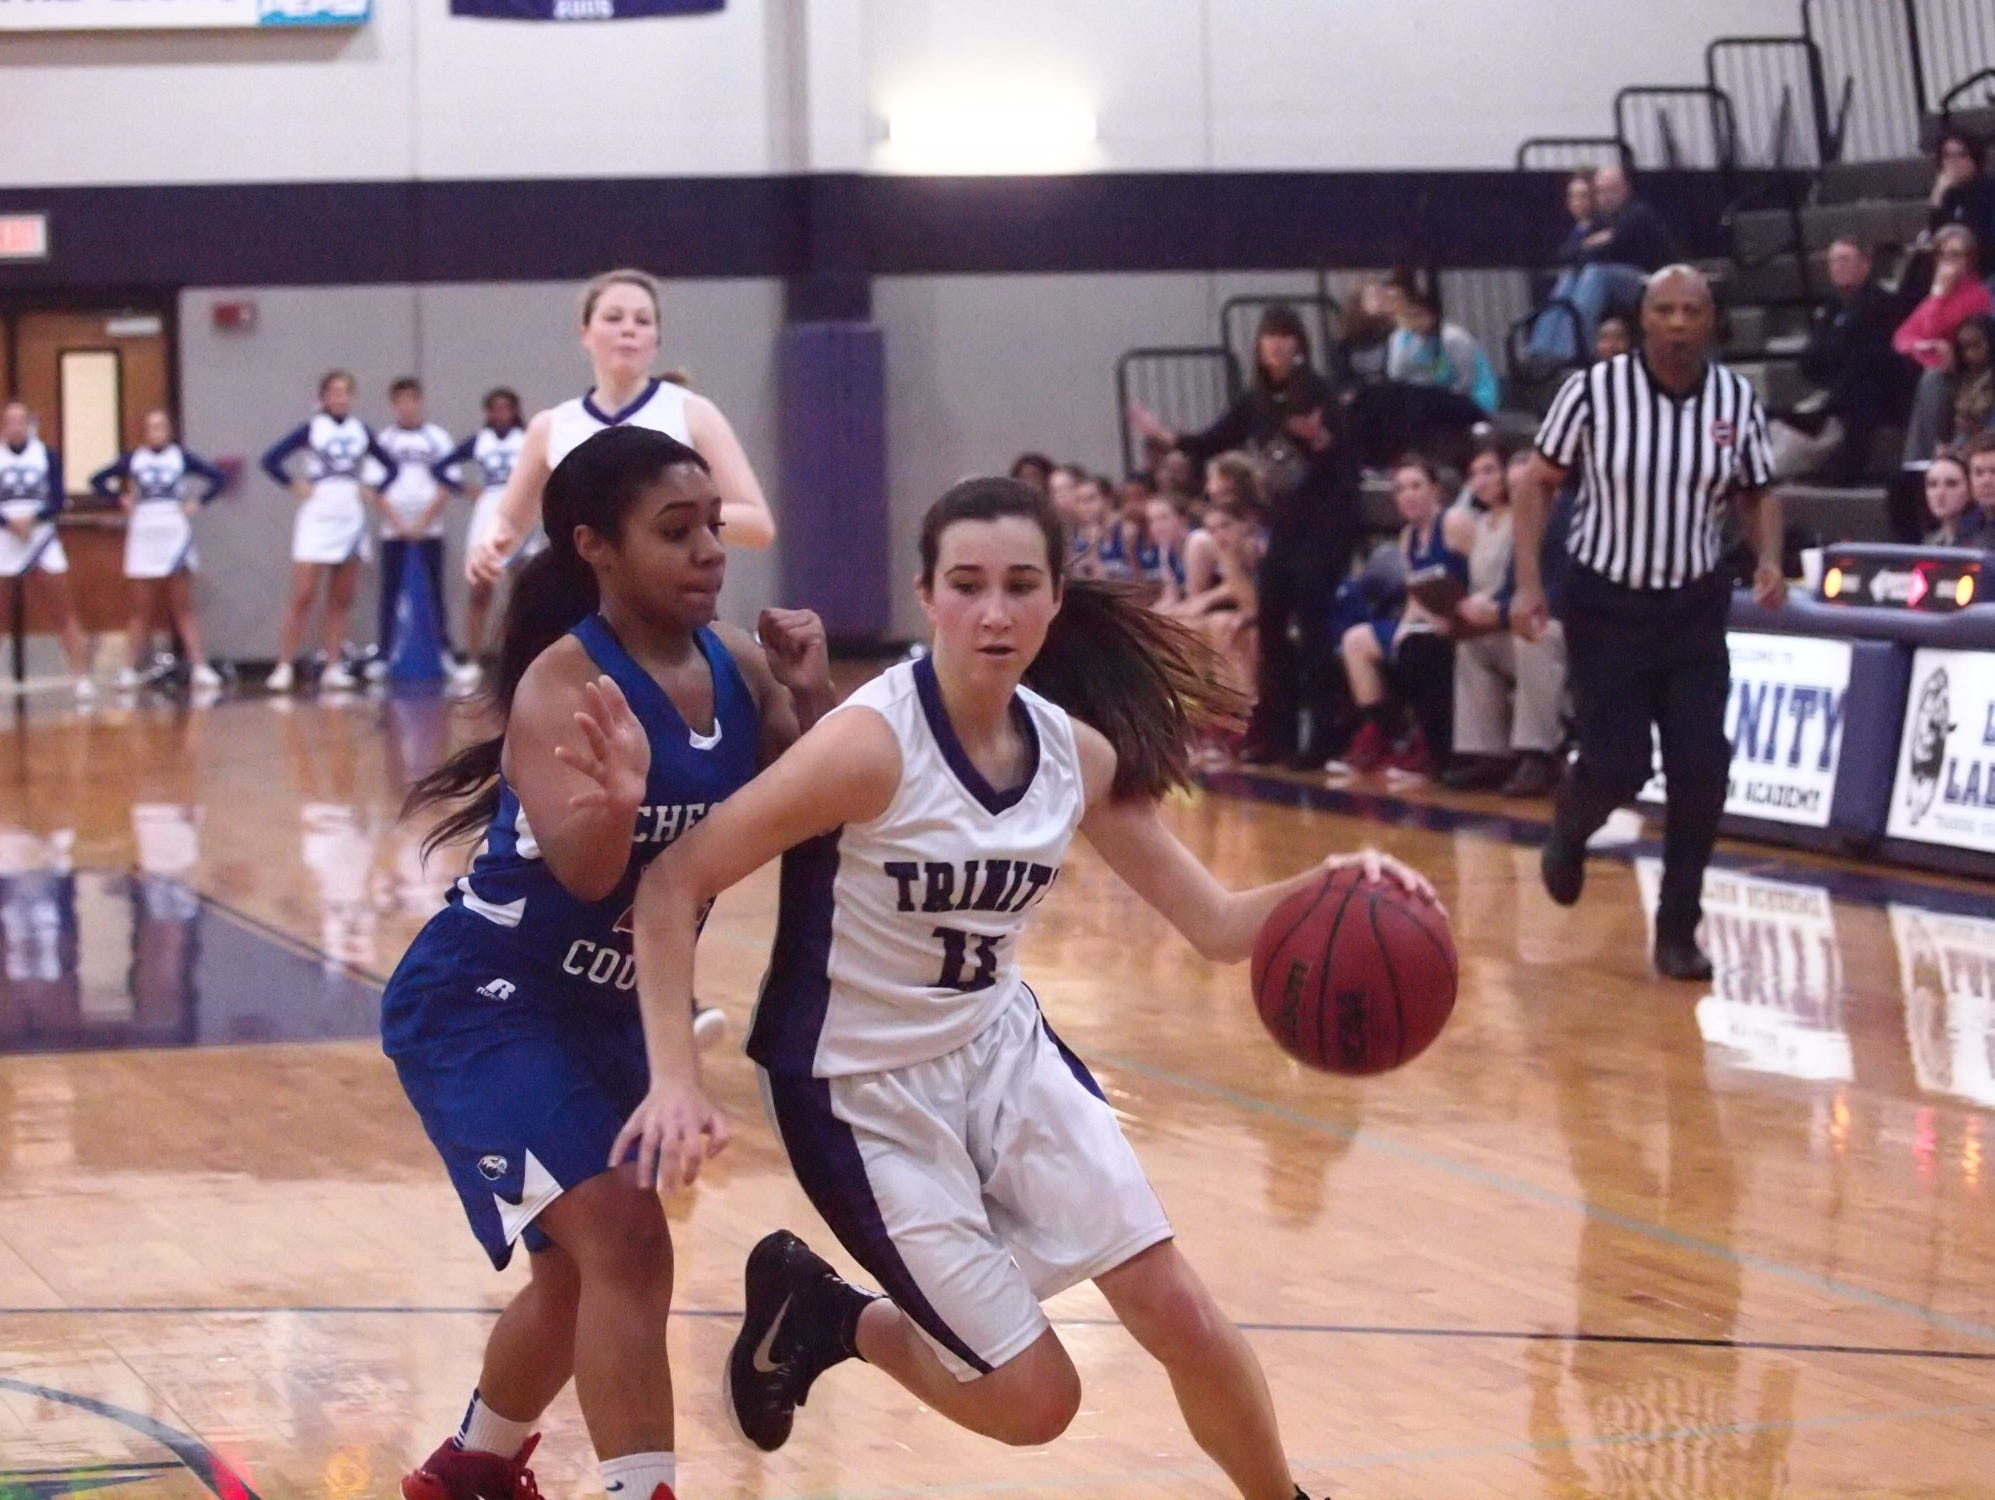 Lytle, shown here in a game last year, scored 42 points in an overtime win last month over West Carroll.